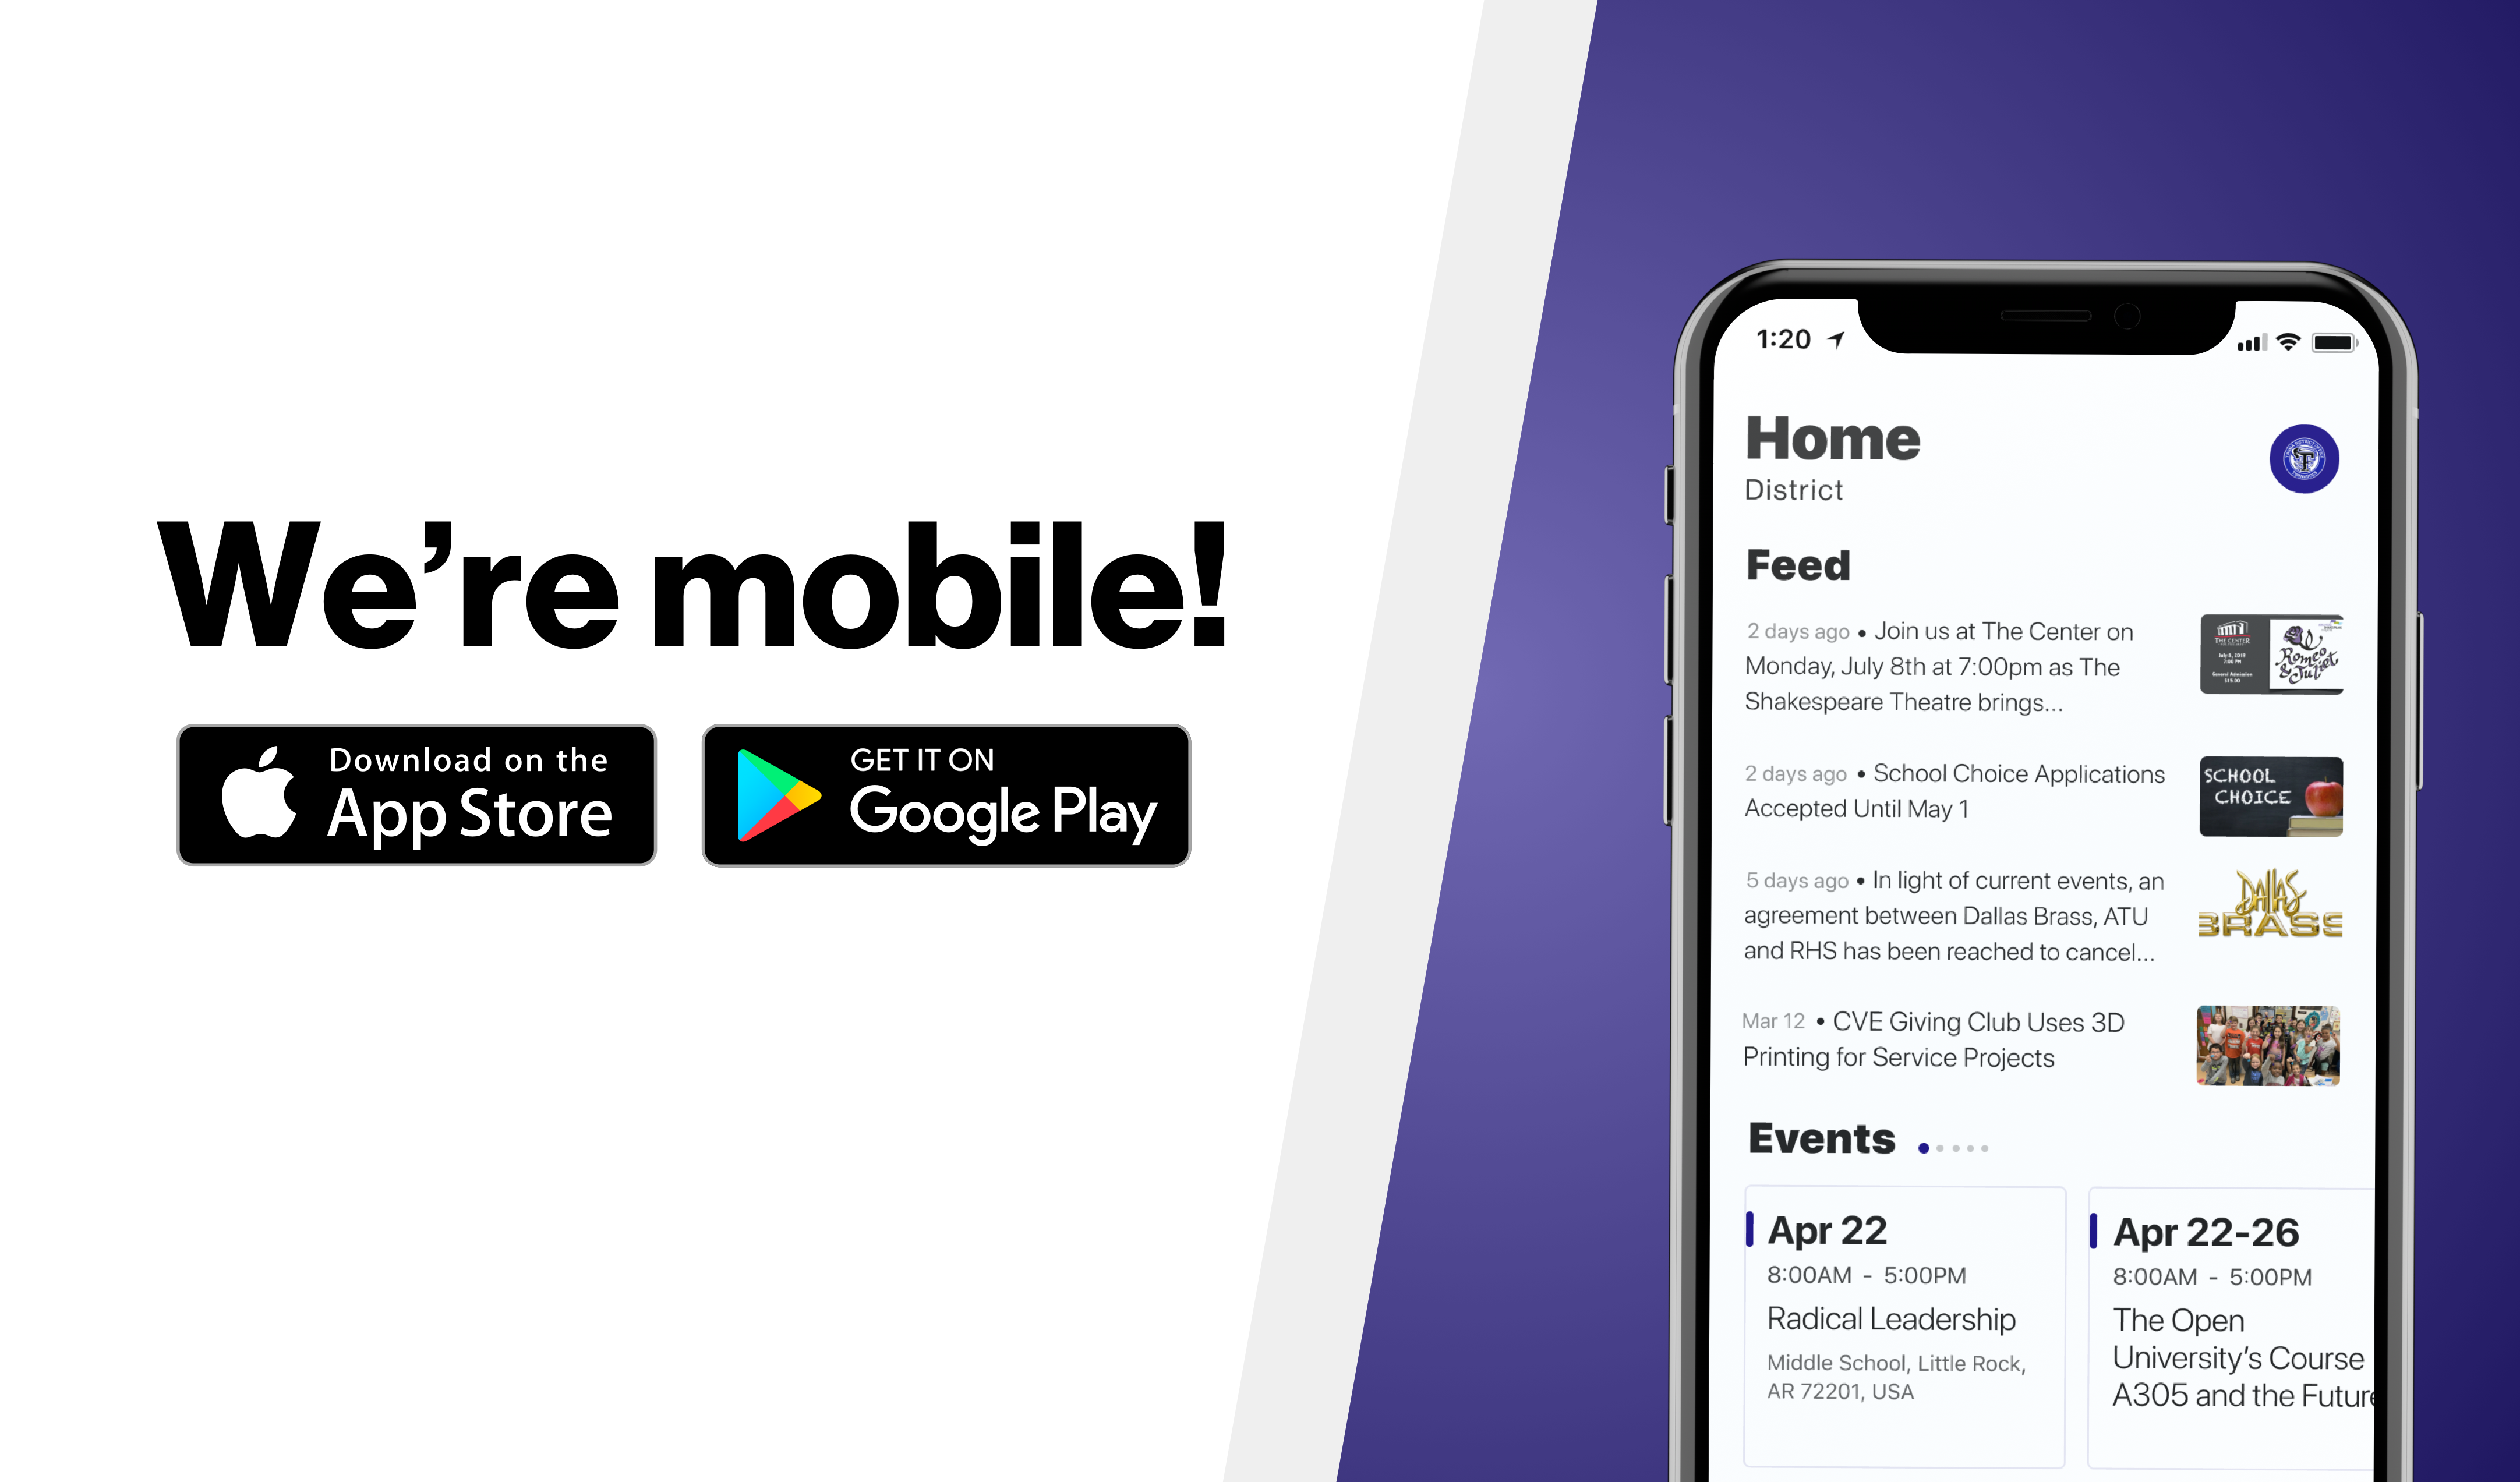 download the app!